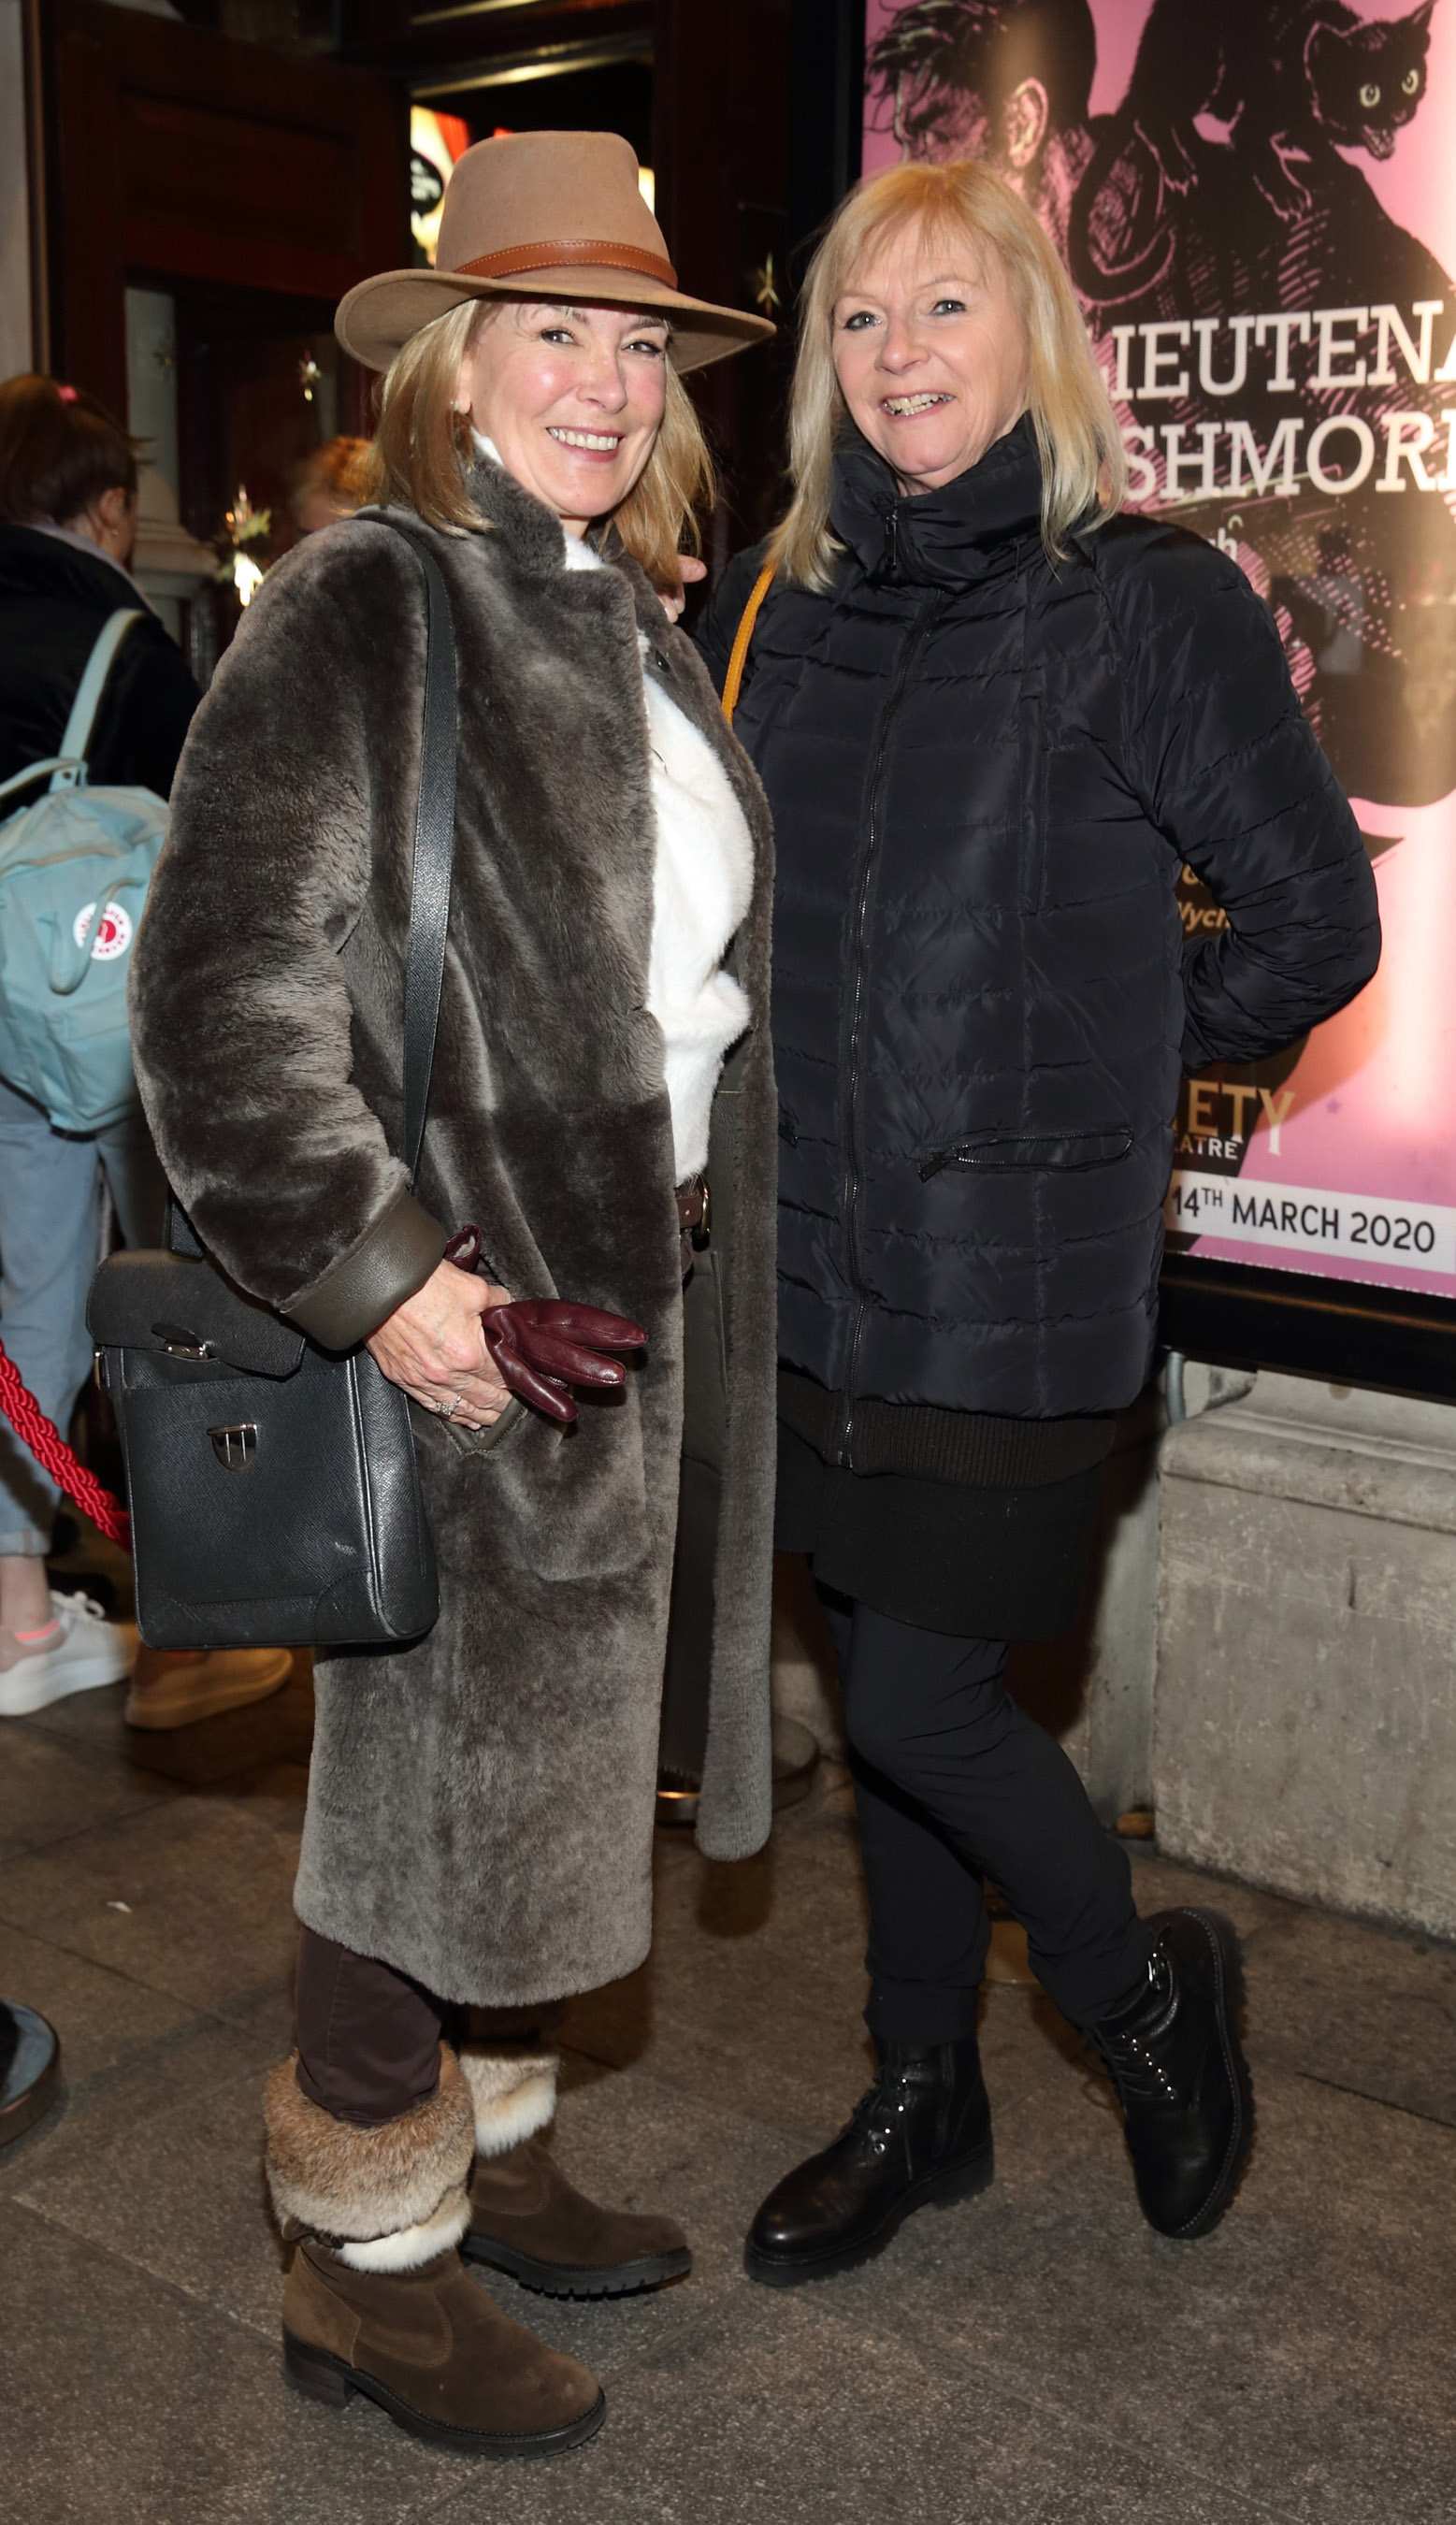 Rhona Teehan and Carol Dixon pictured at the opening of the Gaiety Theatre's major new production of Martin McDonagh's 'The Lieutenant of Inishmore', which will run at the Gaiety Theatre until 14th March.